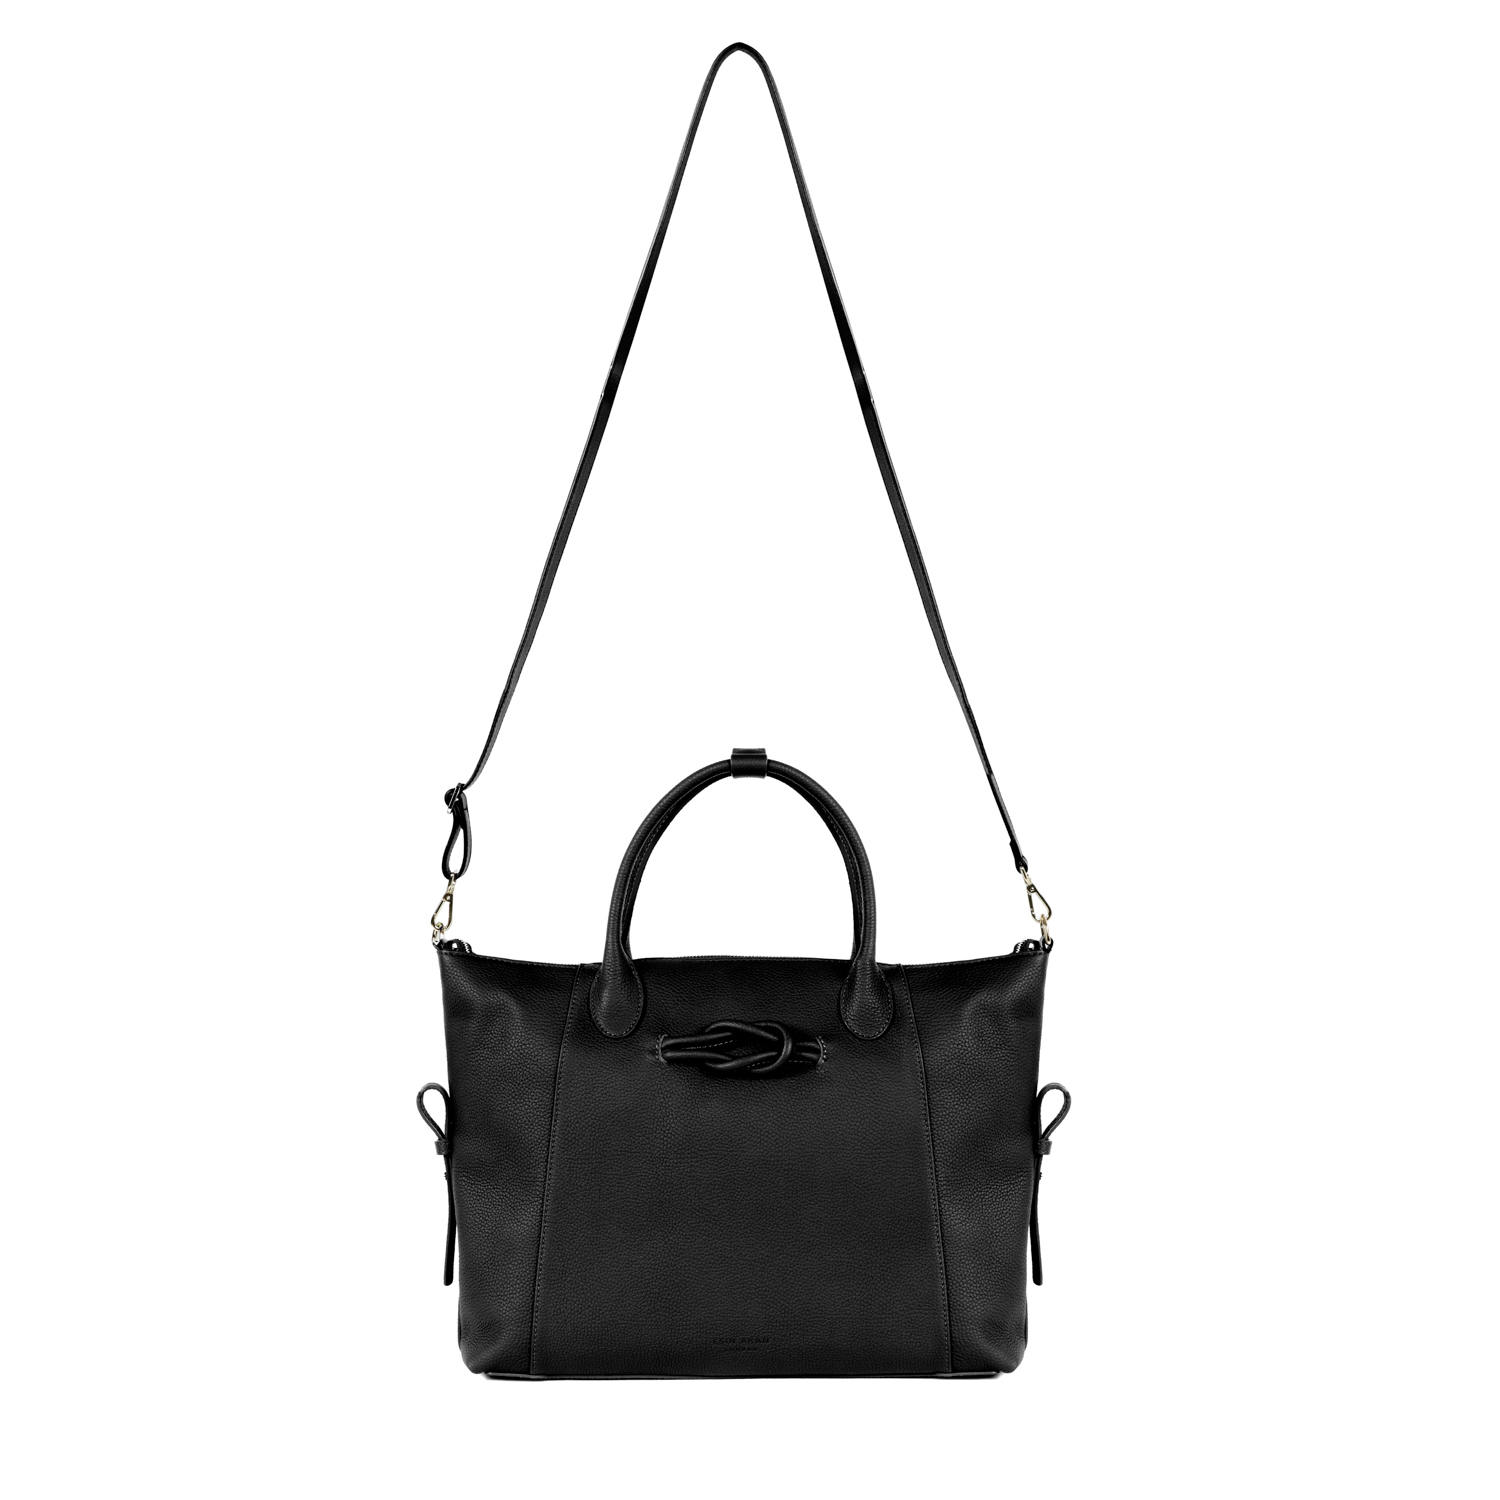 Wimbledon Backpack Tote by Esin Akan on curated-crowd.com